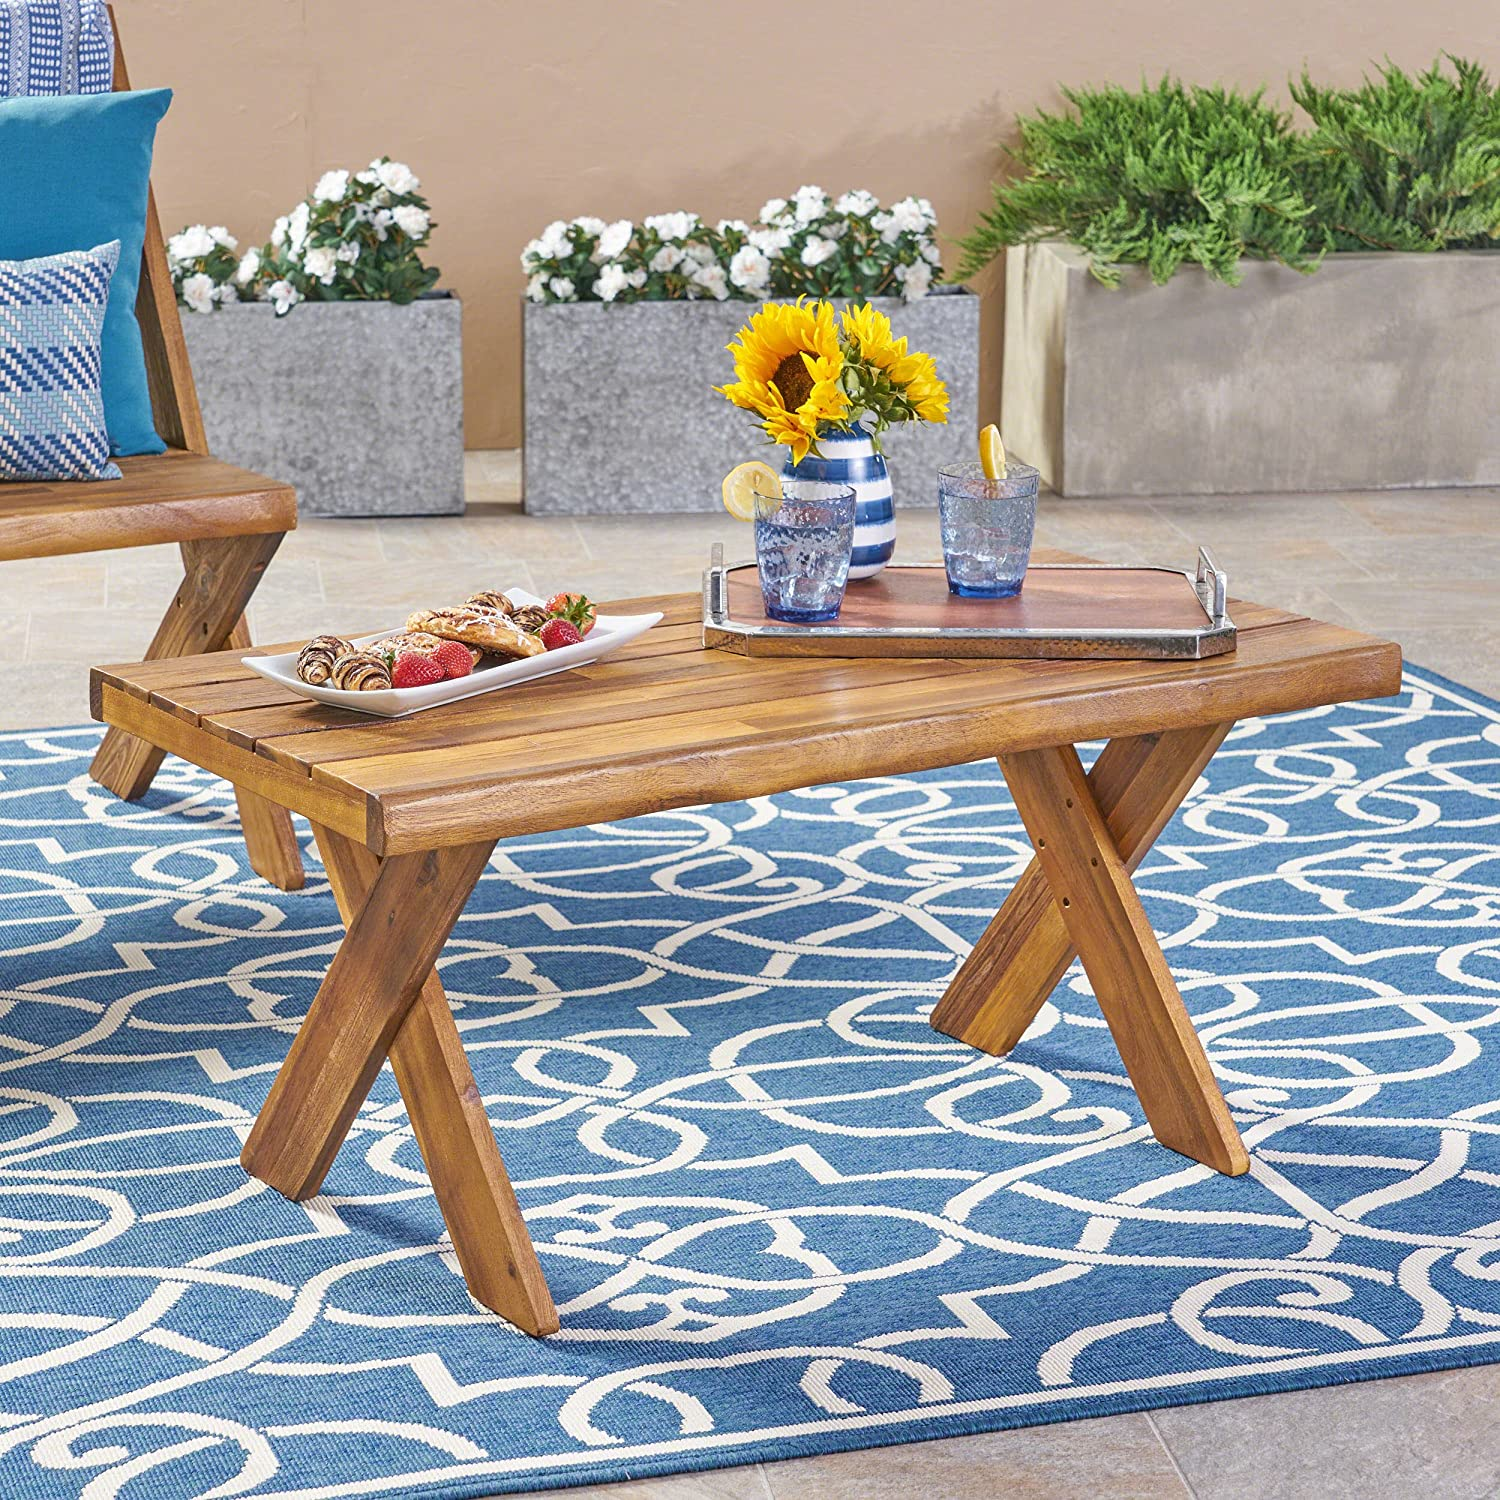 Christopher Knight Home 304412 Irene Outdoor Acacia Wood Coffee Table, Sandblast Teak Finish